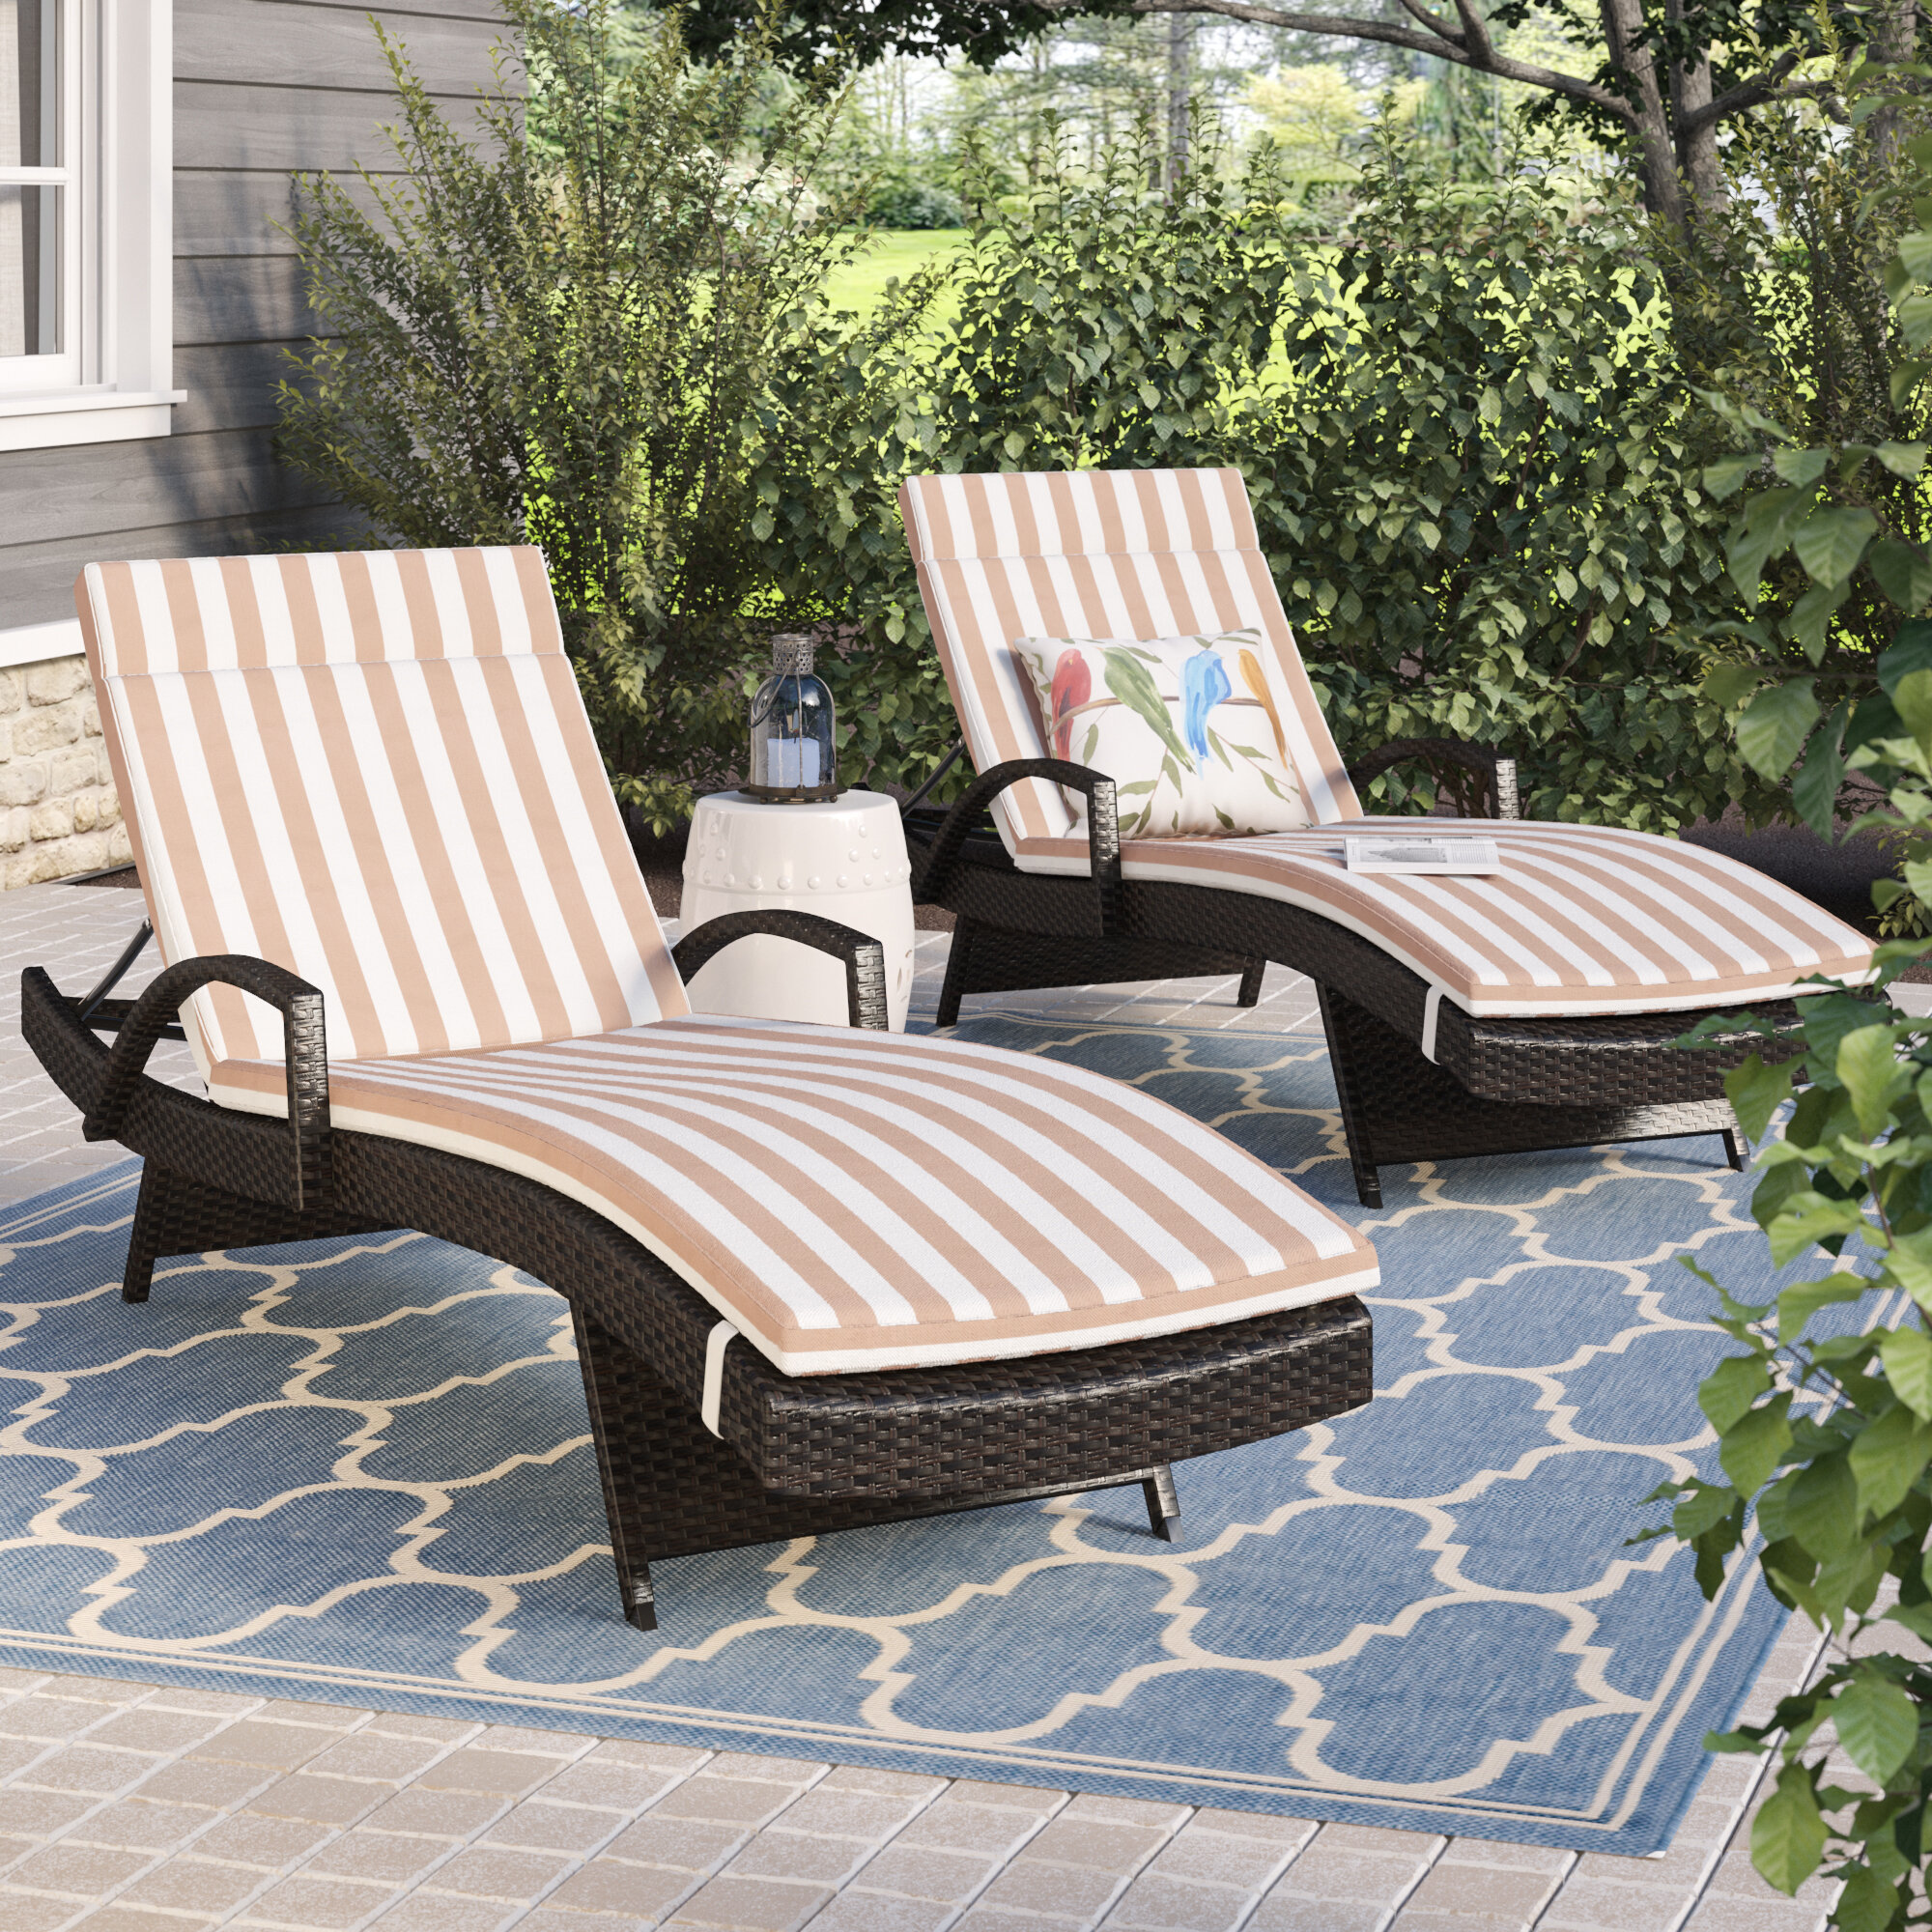 Rebello Outdoor Reclining Chaise Lounge